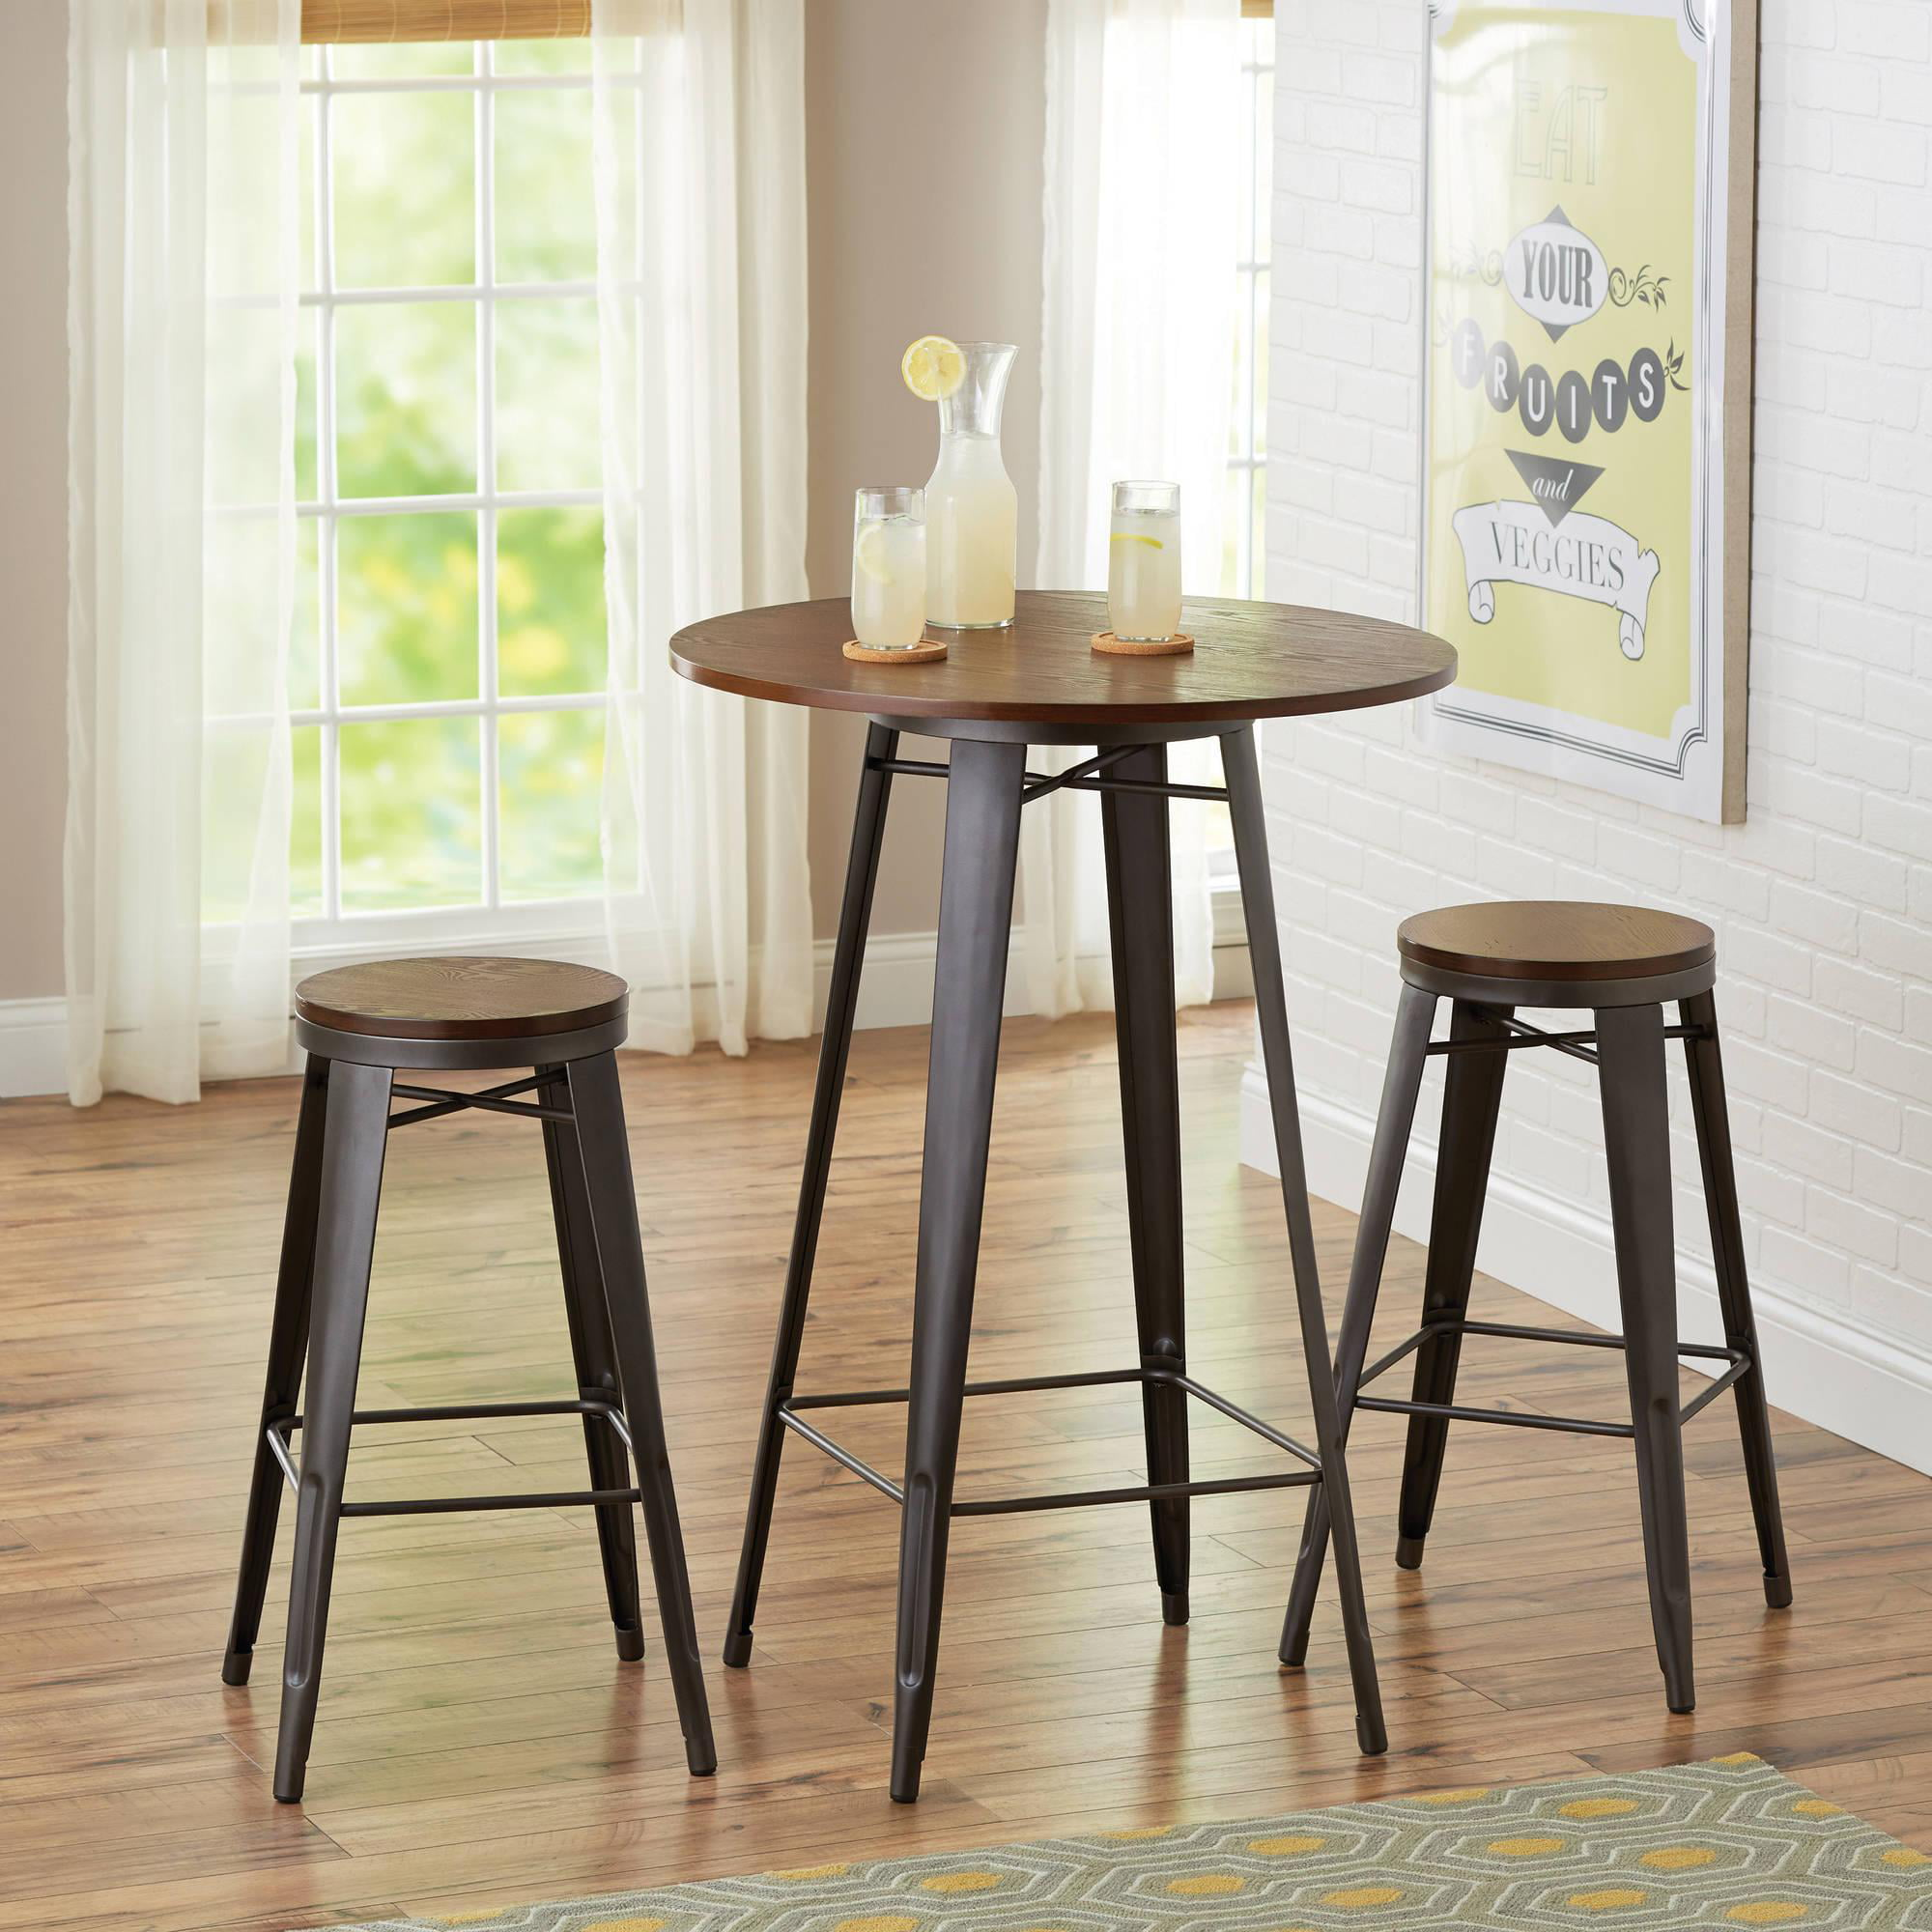 better homes and gardens harper 3 piece pub set multiple colors walmartcom - Kitchen Bar Table Set